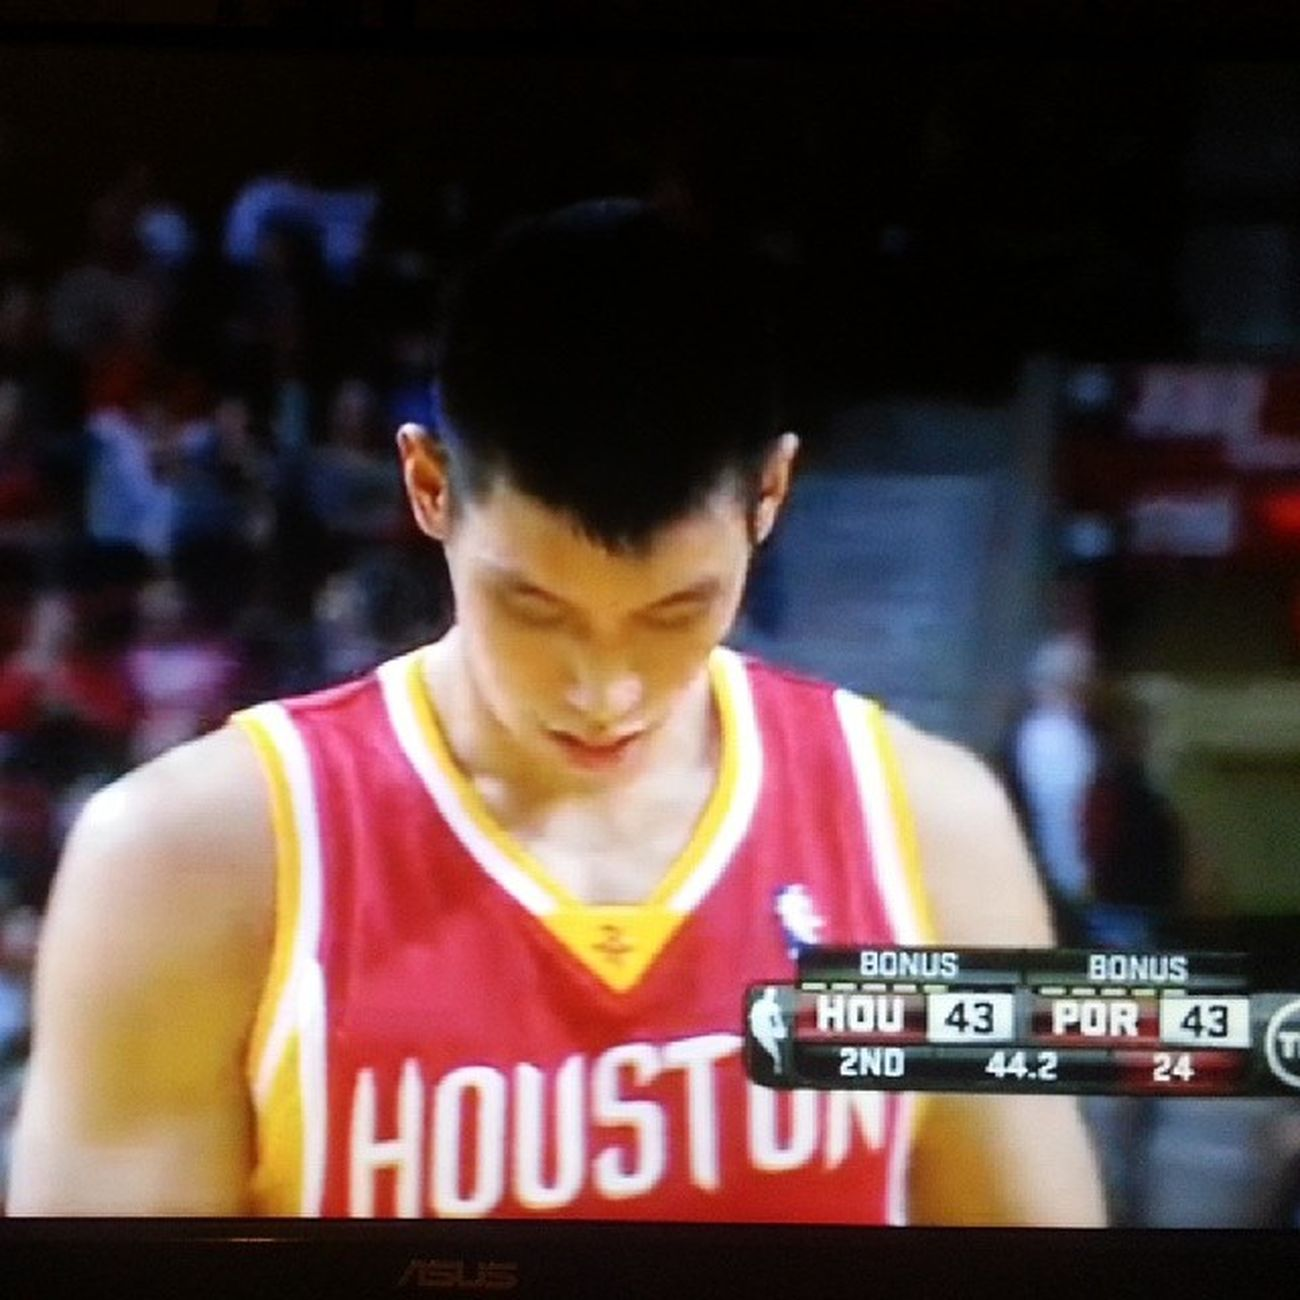 come on! im here to see Linsanity coming back. give Jeremylin more time. Harden is suck. Hou vs. POR